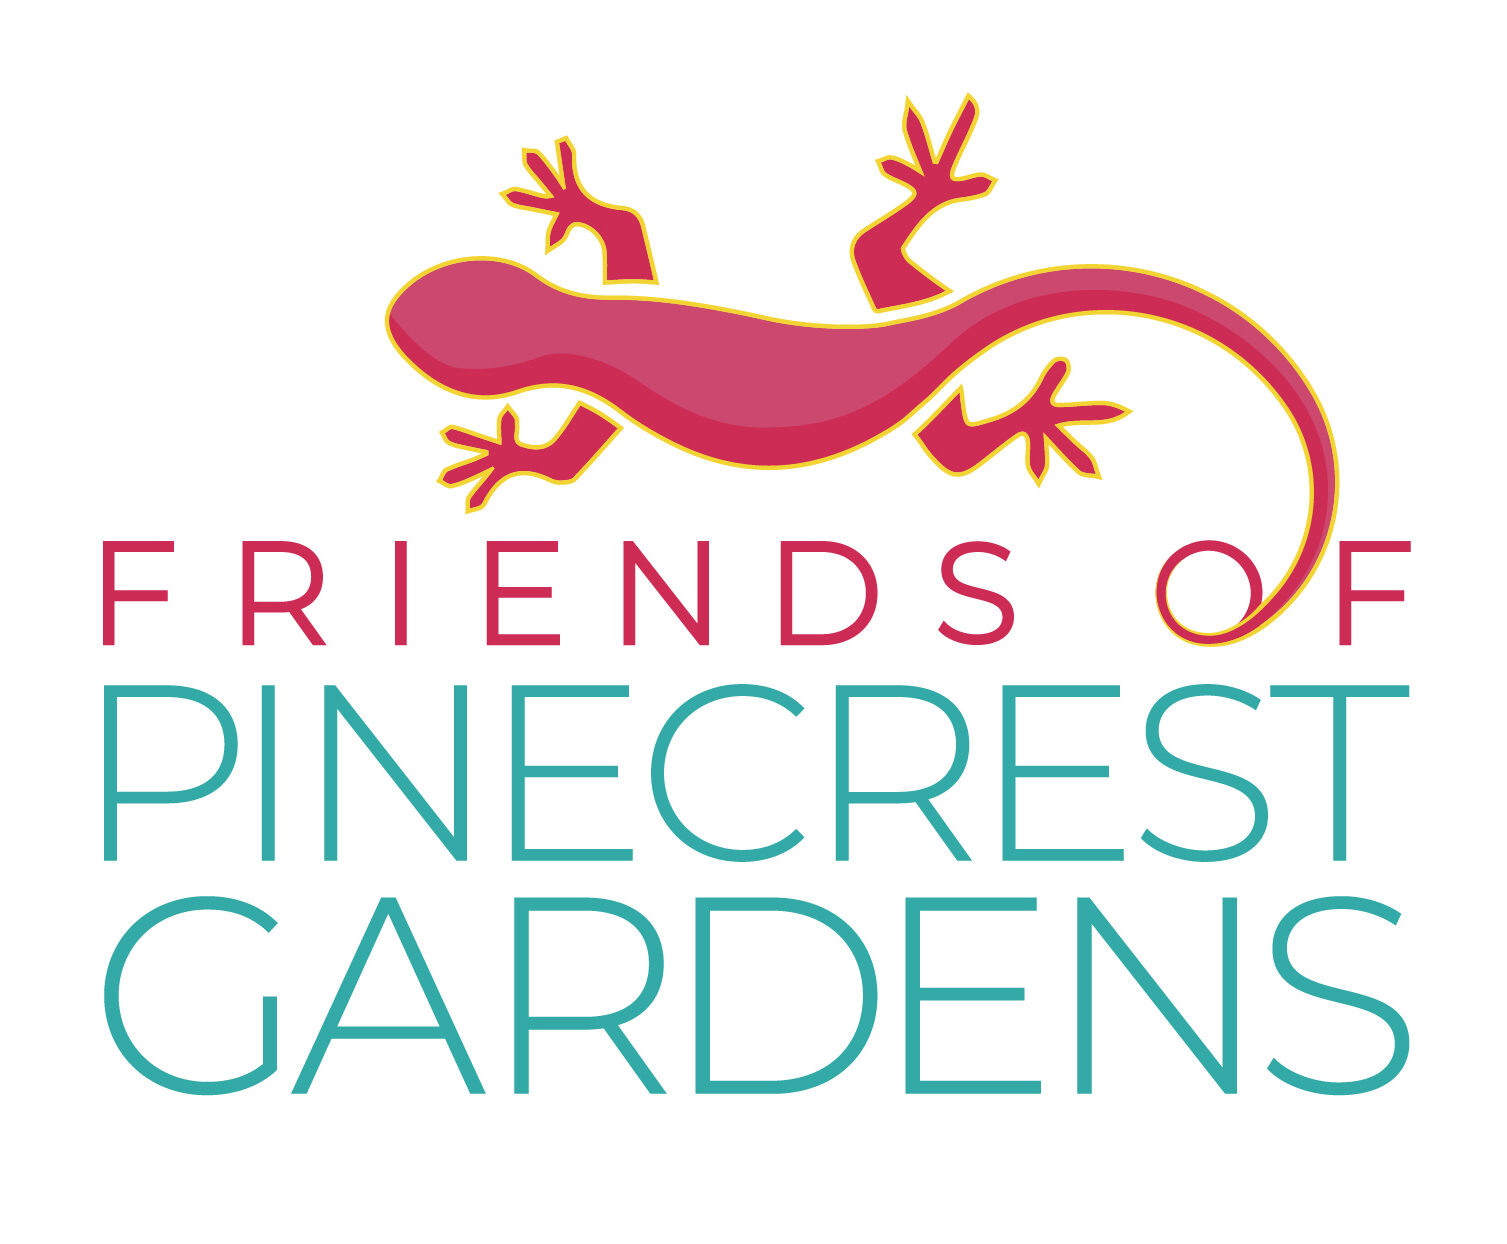 Friends of Pinecrest Gardens